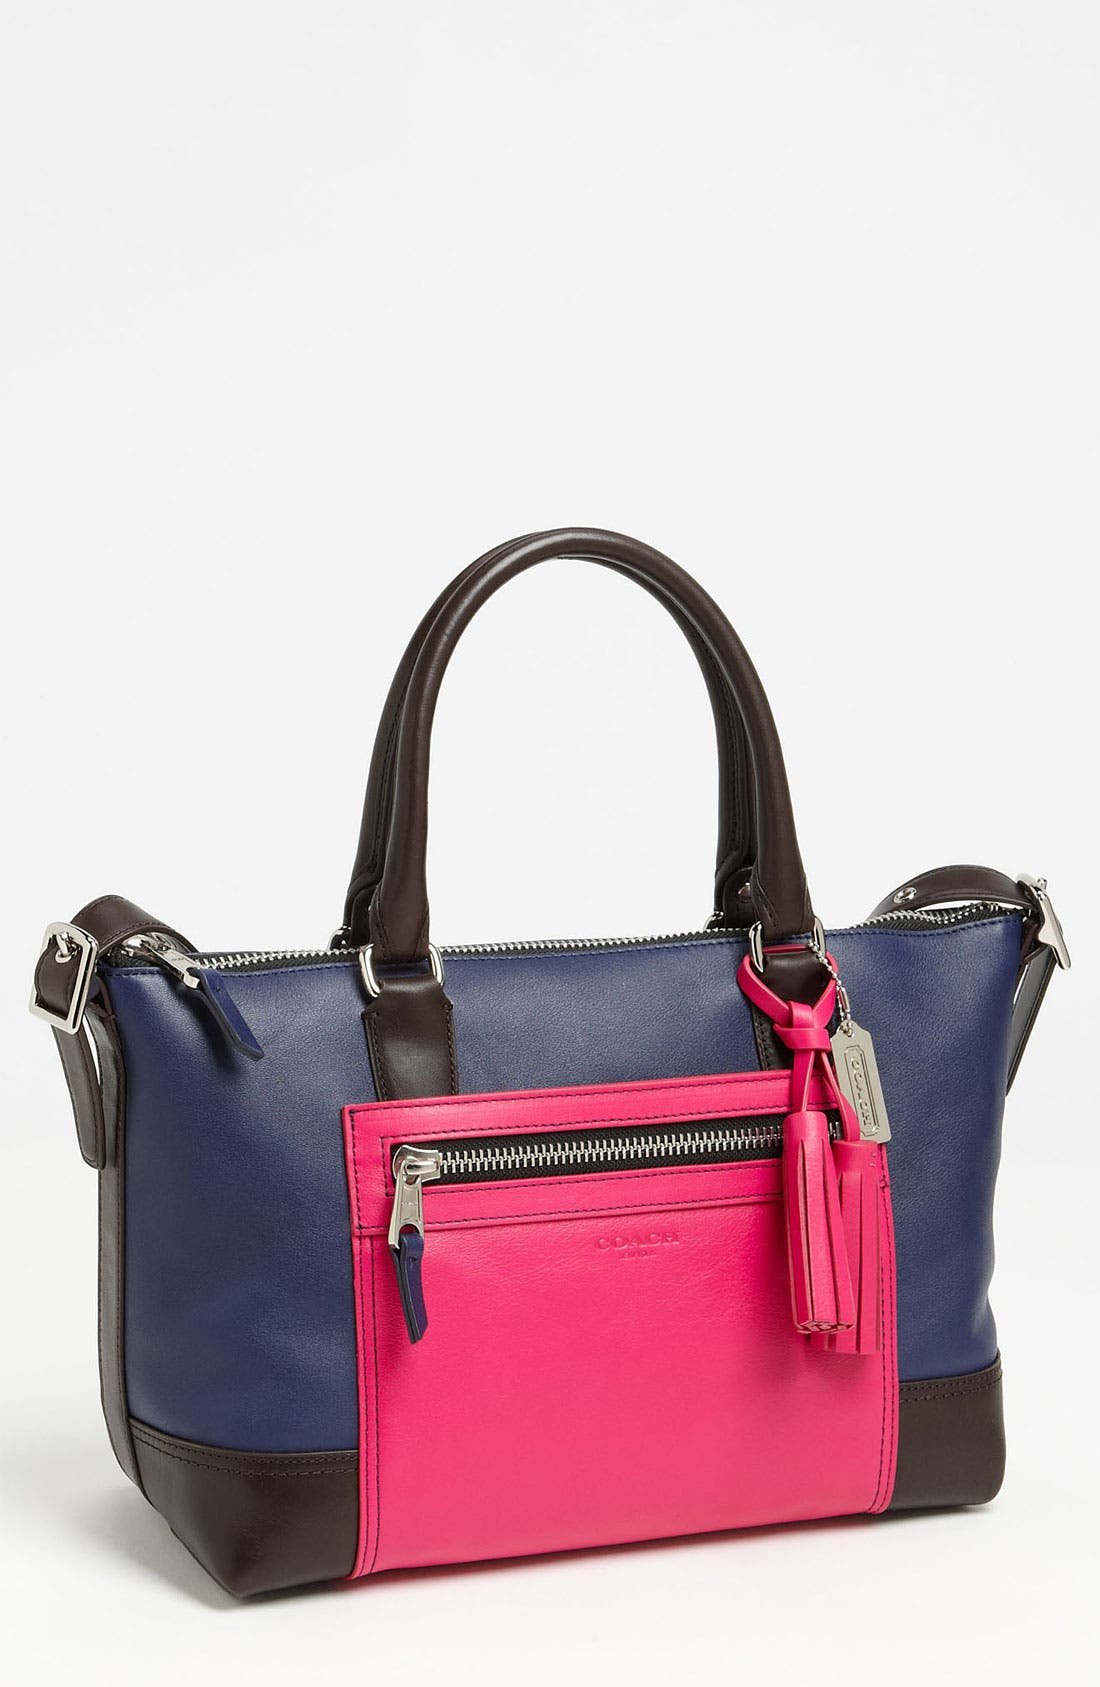 Alternate Image 1 Selected - COACH 'Legacy Colorblock Molly' Leather Satchel